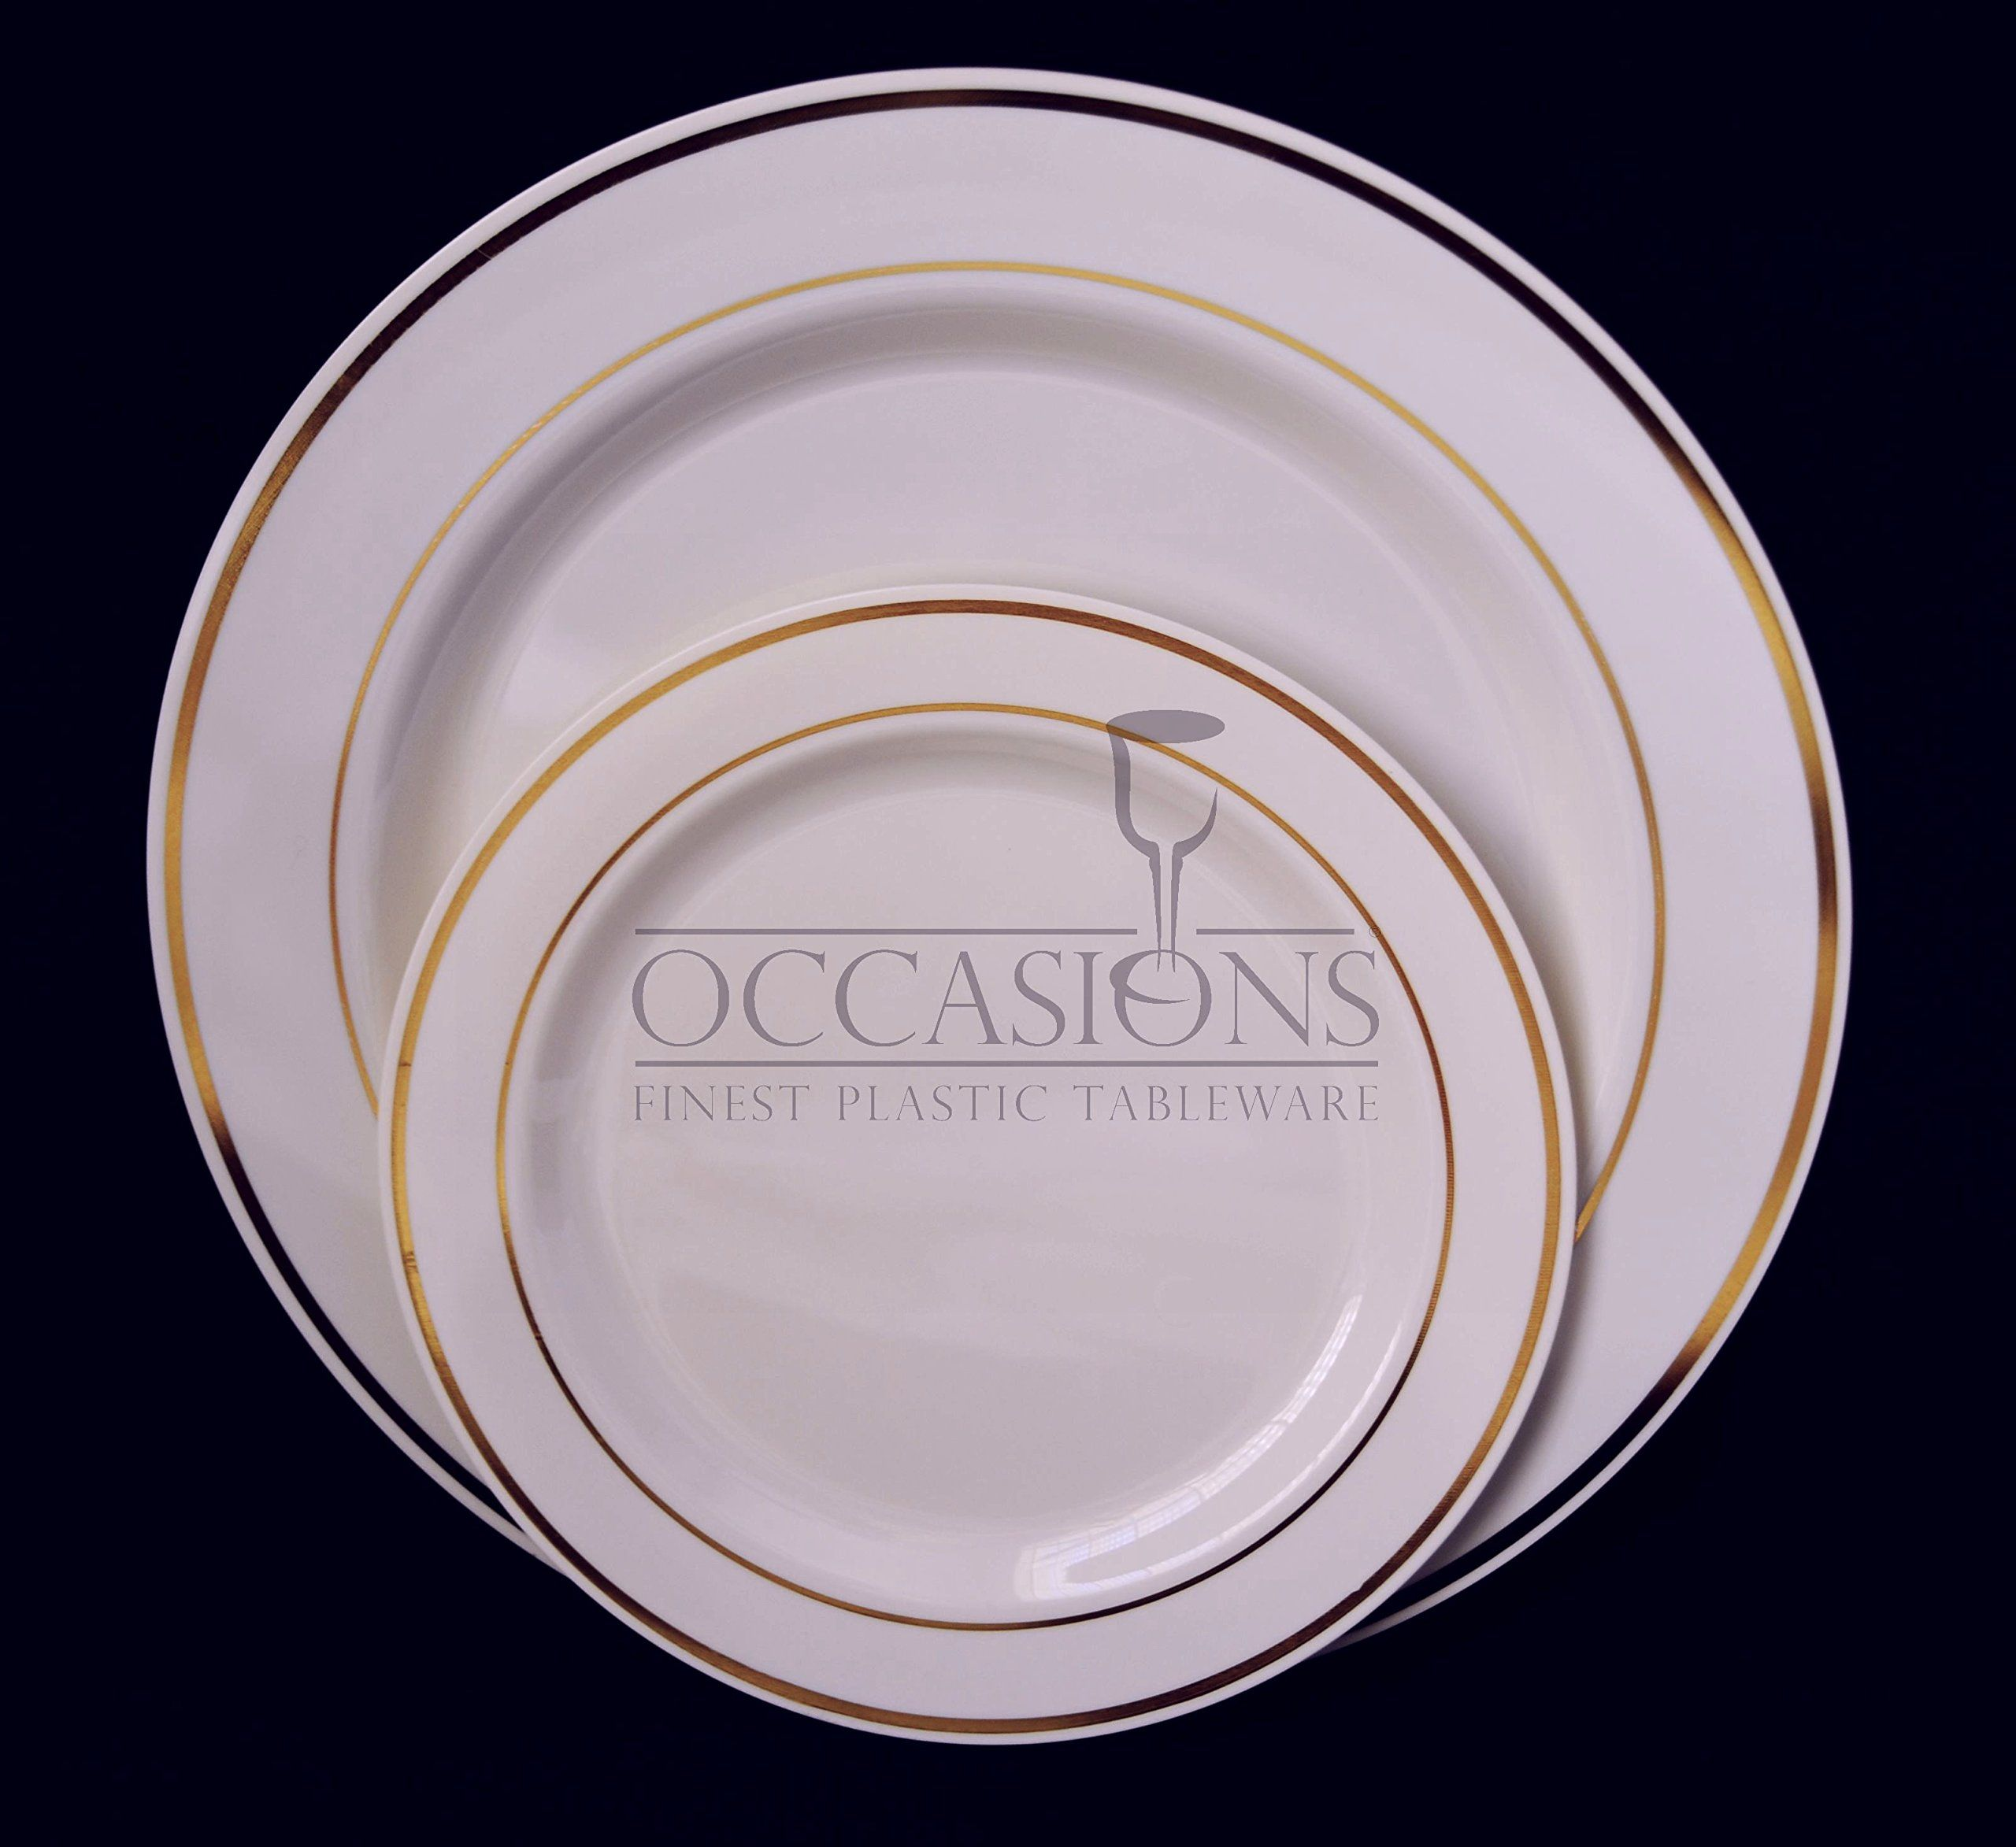 Amazon.com Bulk Disposable Plastic Plates - Masterpiece Style- Bone with Gold rim. Choose qttys and size inside! (10 10.5\u0027\u0027 dinner plate) Kitchen \u0026 ...  sc 1 st  Pinterest : bulk plastic plates - pezcame.com